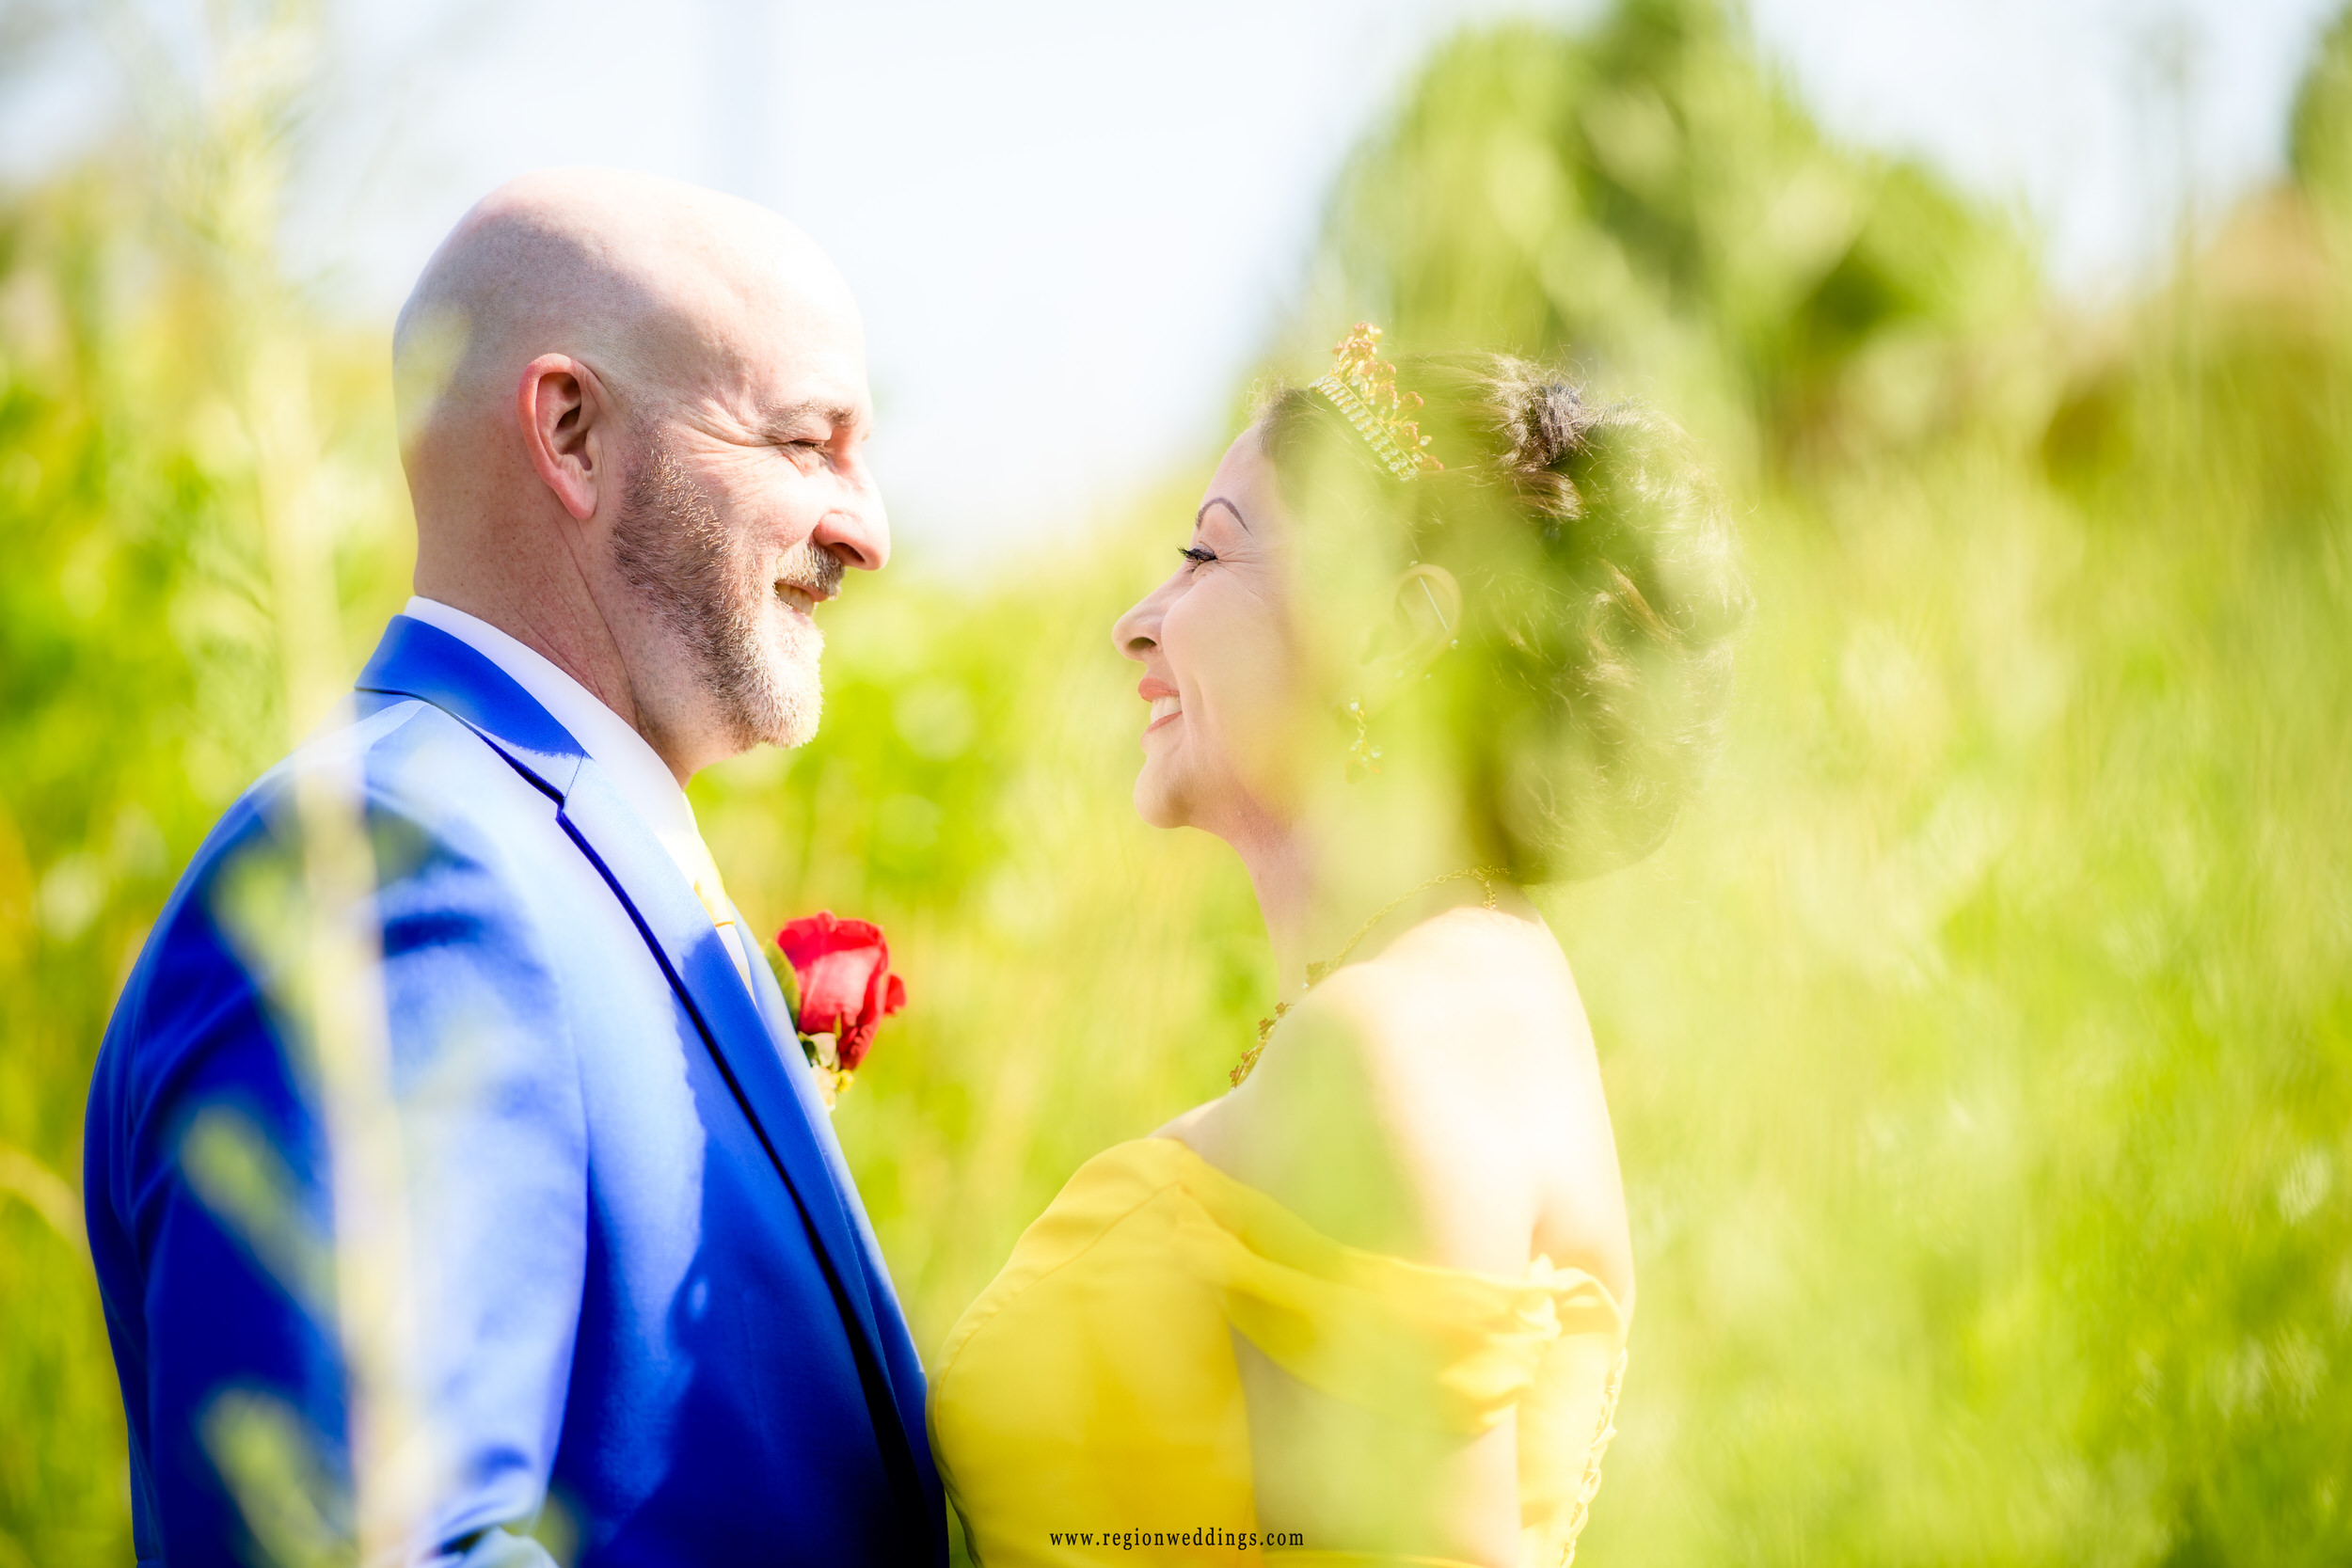 Romantic gaze of the bride and groom during their summer wedding portraits.